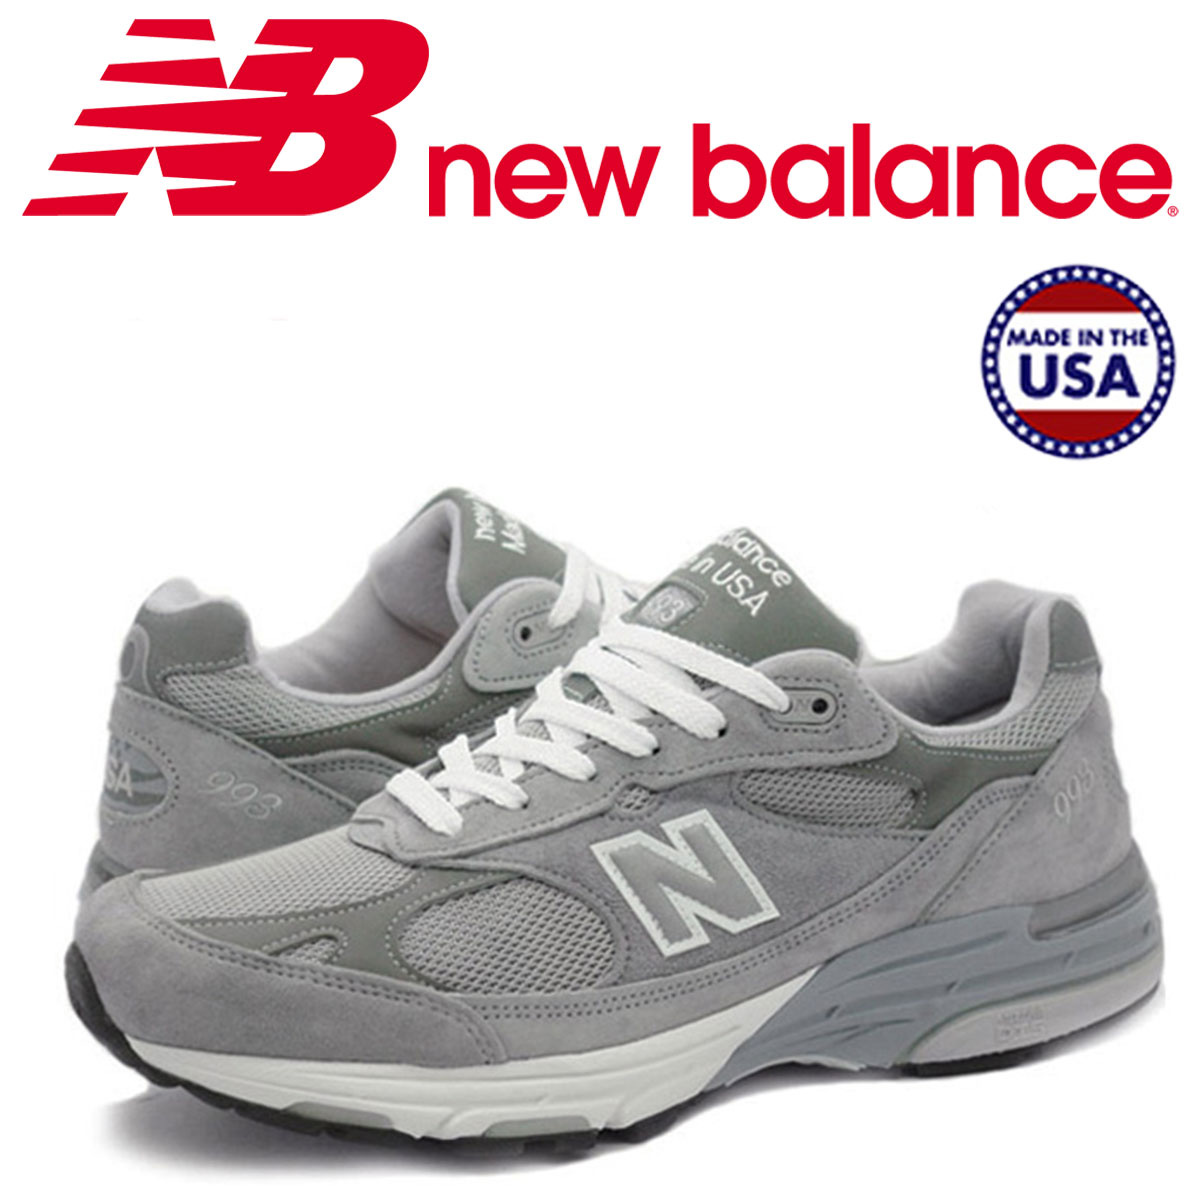 new balance 993 men's New Balance sneakers MR993GL D Wise MADE IN USA gray  [the 7/9 additional arrival]